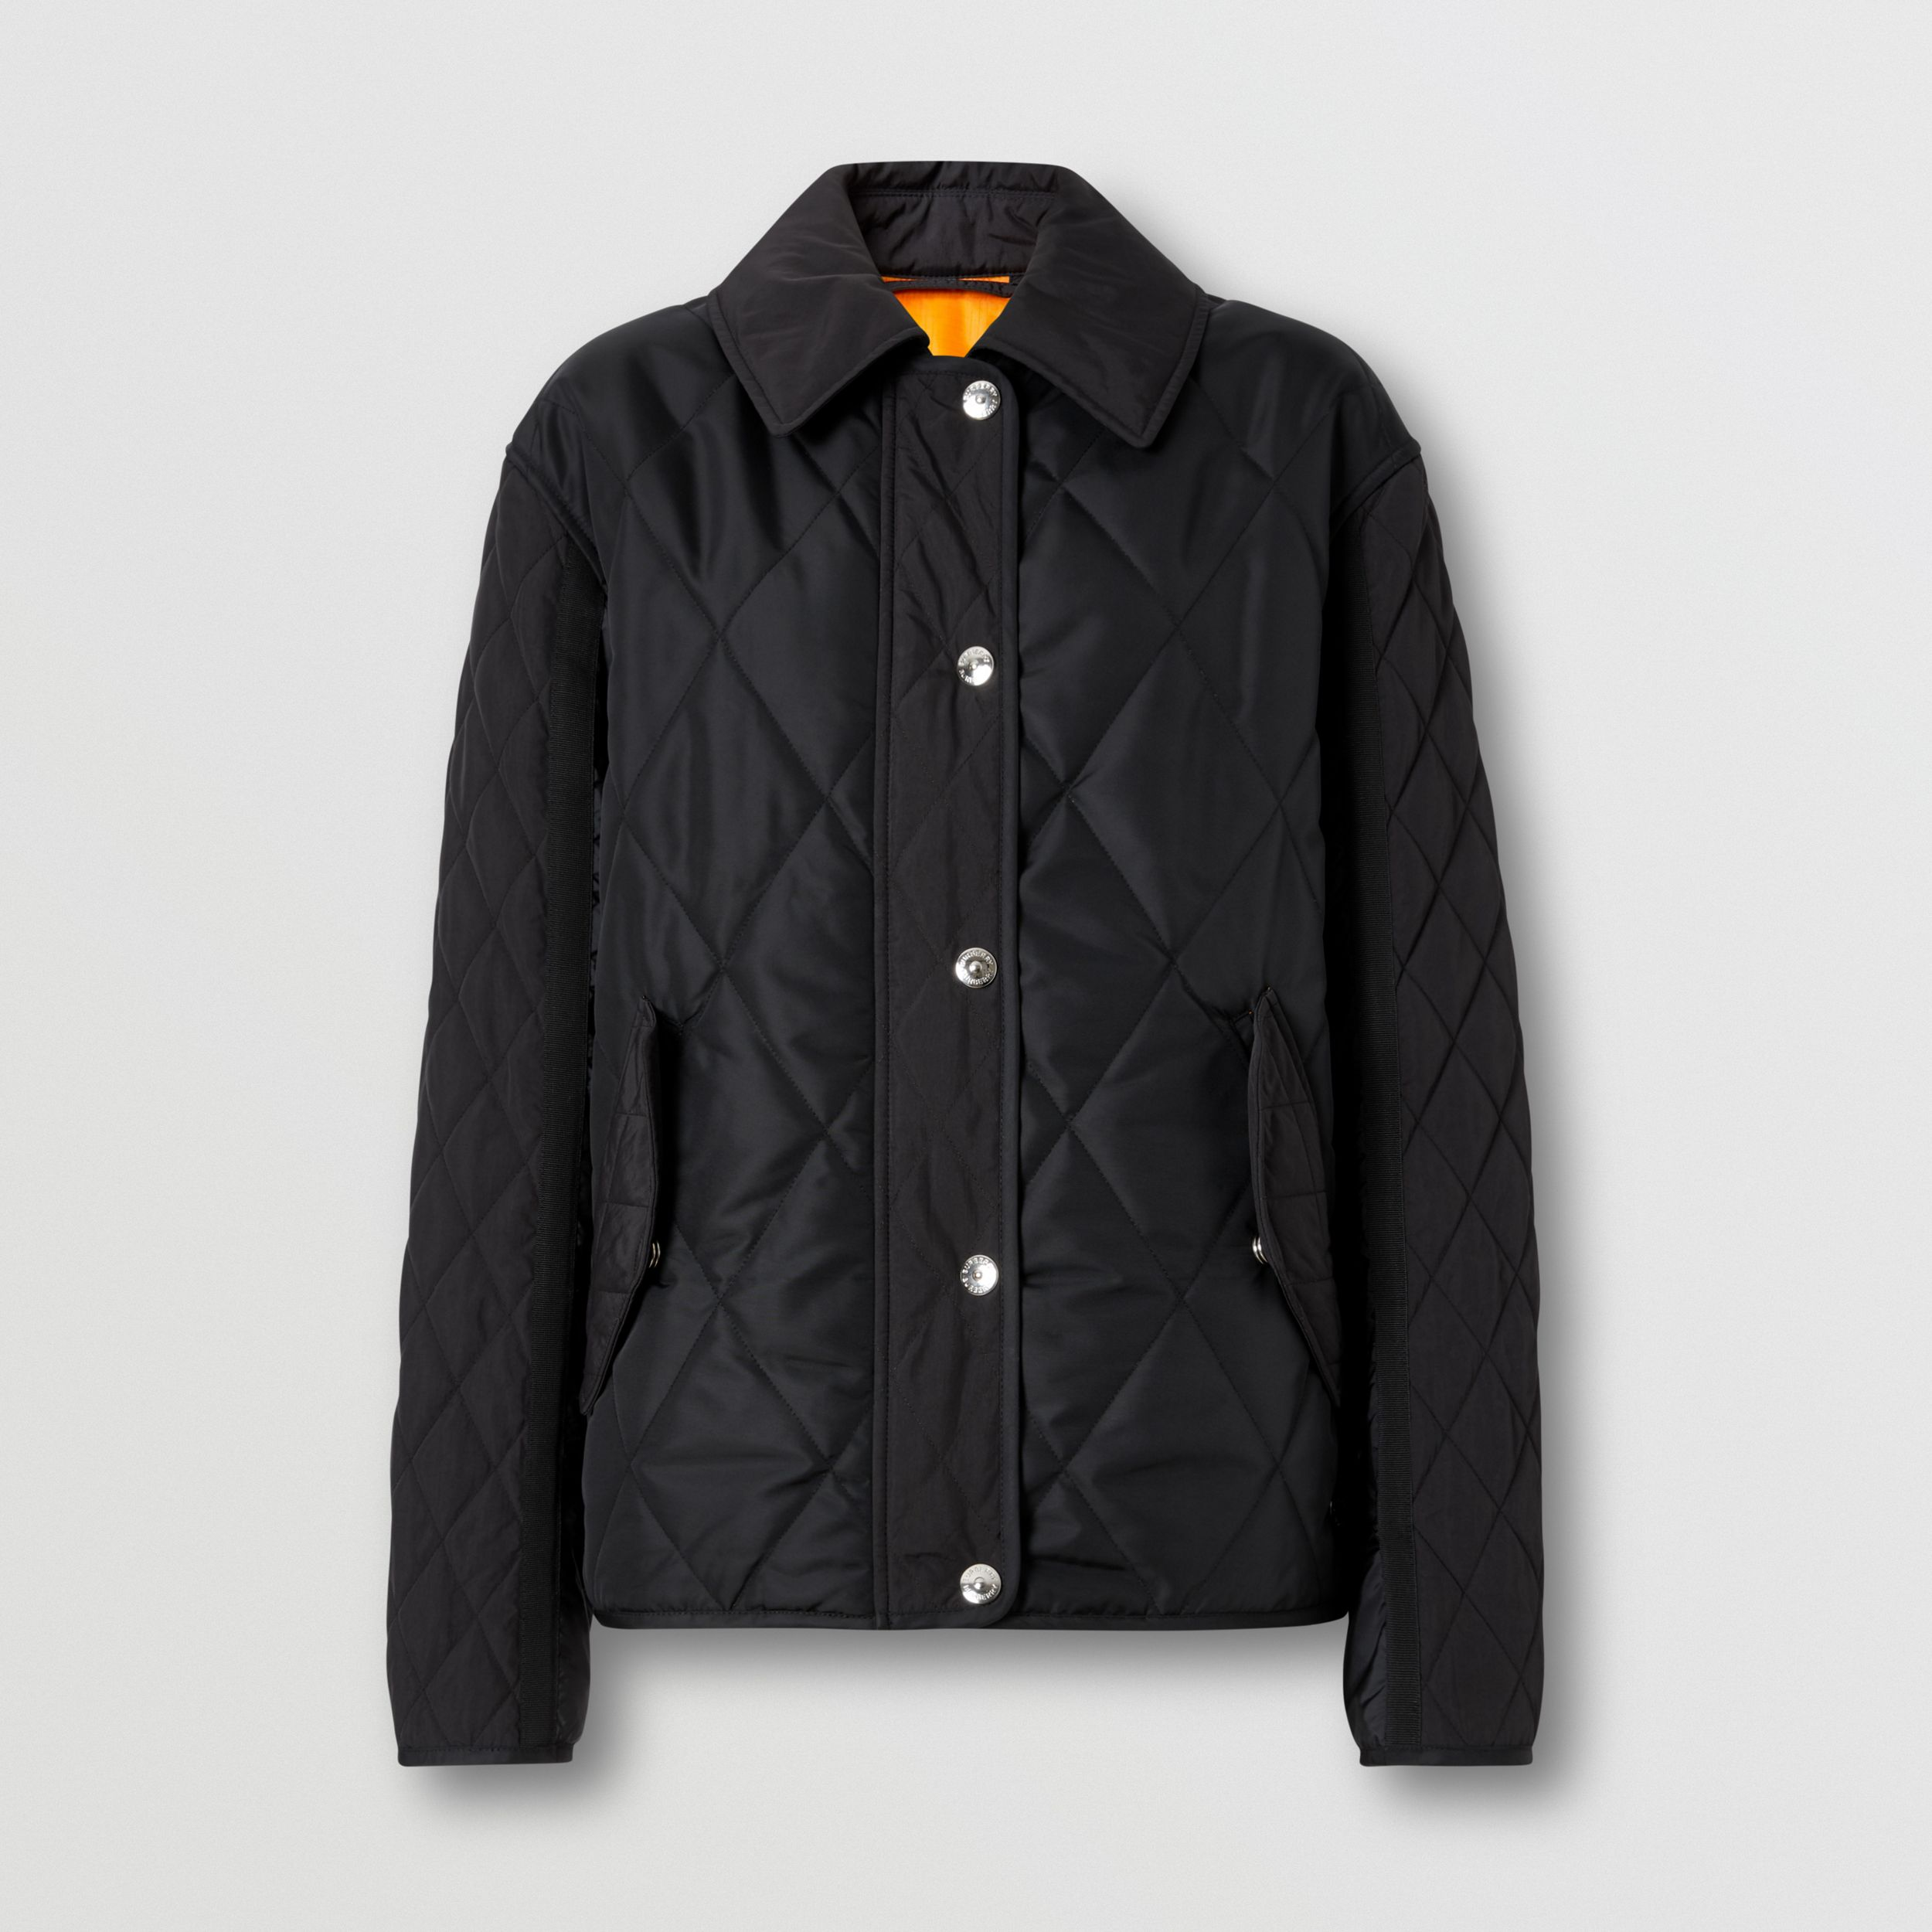 Logo Print Diamond Quilted Jacket in Black - Women | Burberry - 4